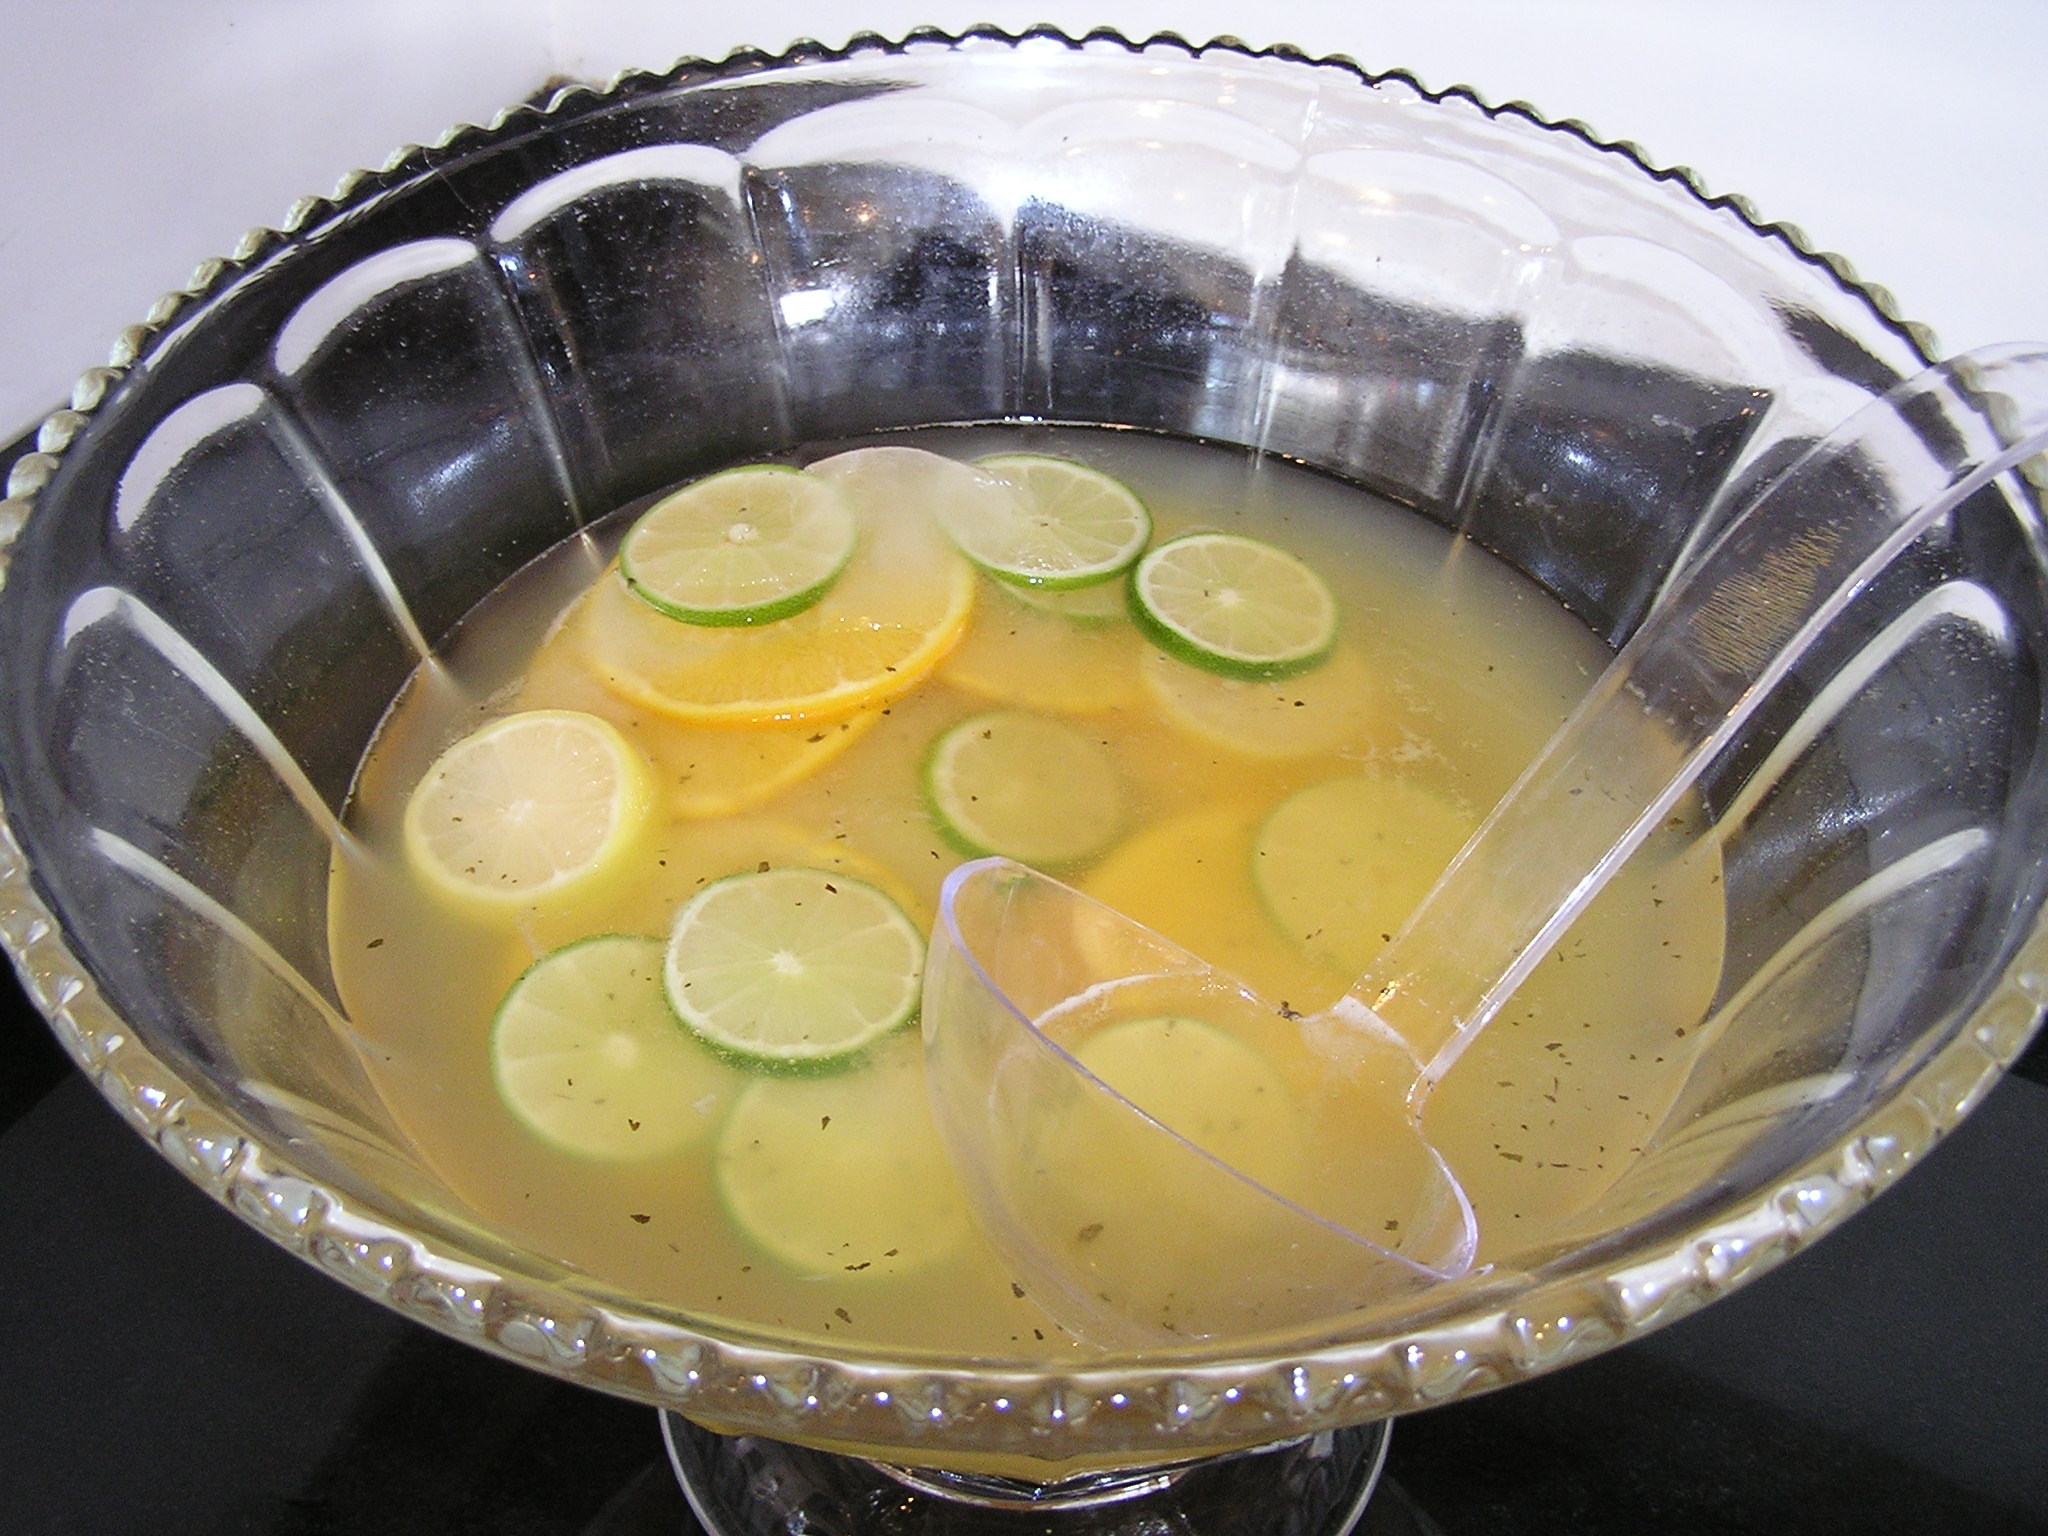 File:Southern Bourbon Punch.jpg - Wikipedia, the free encyclopedia